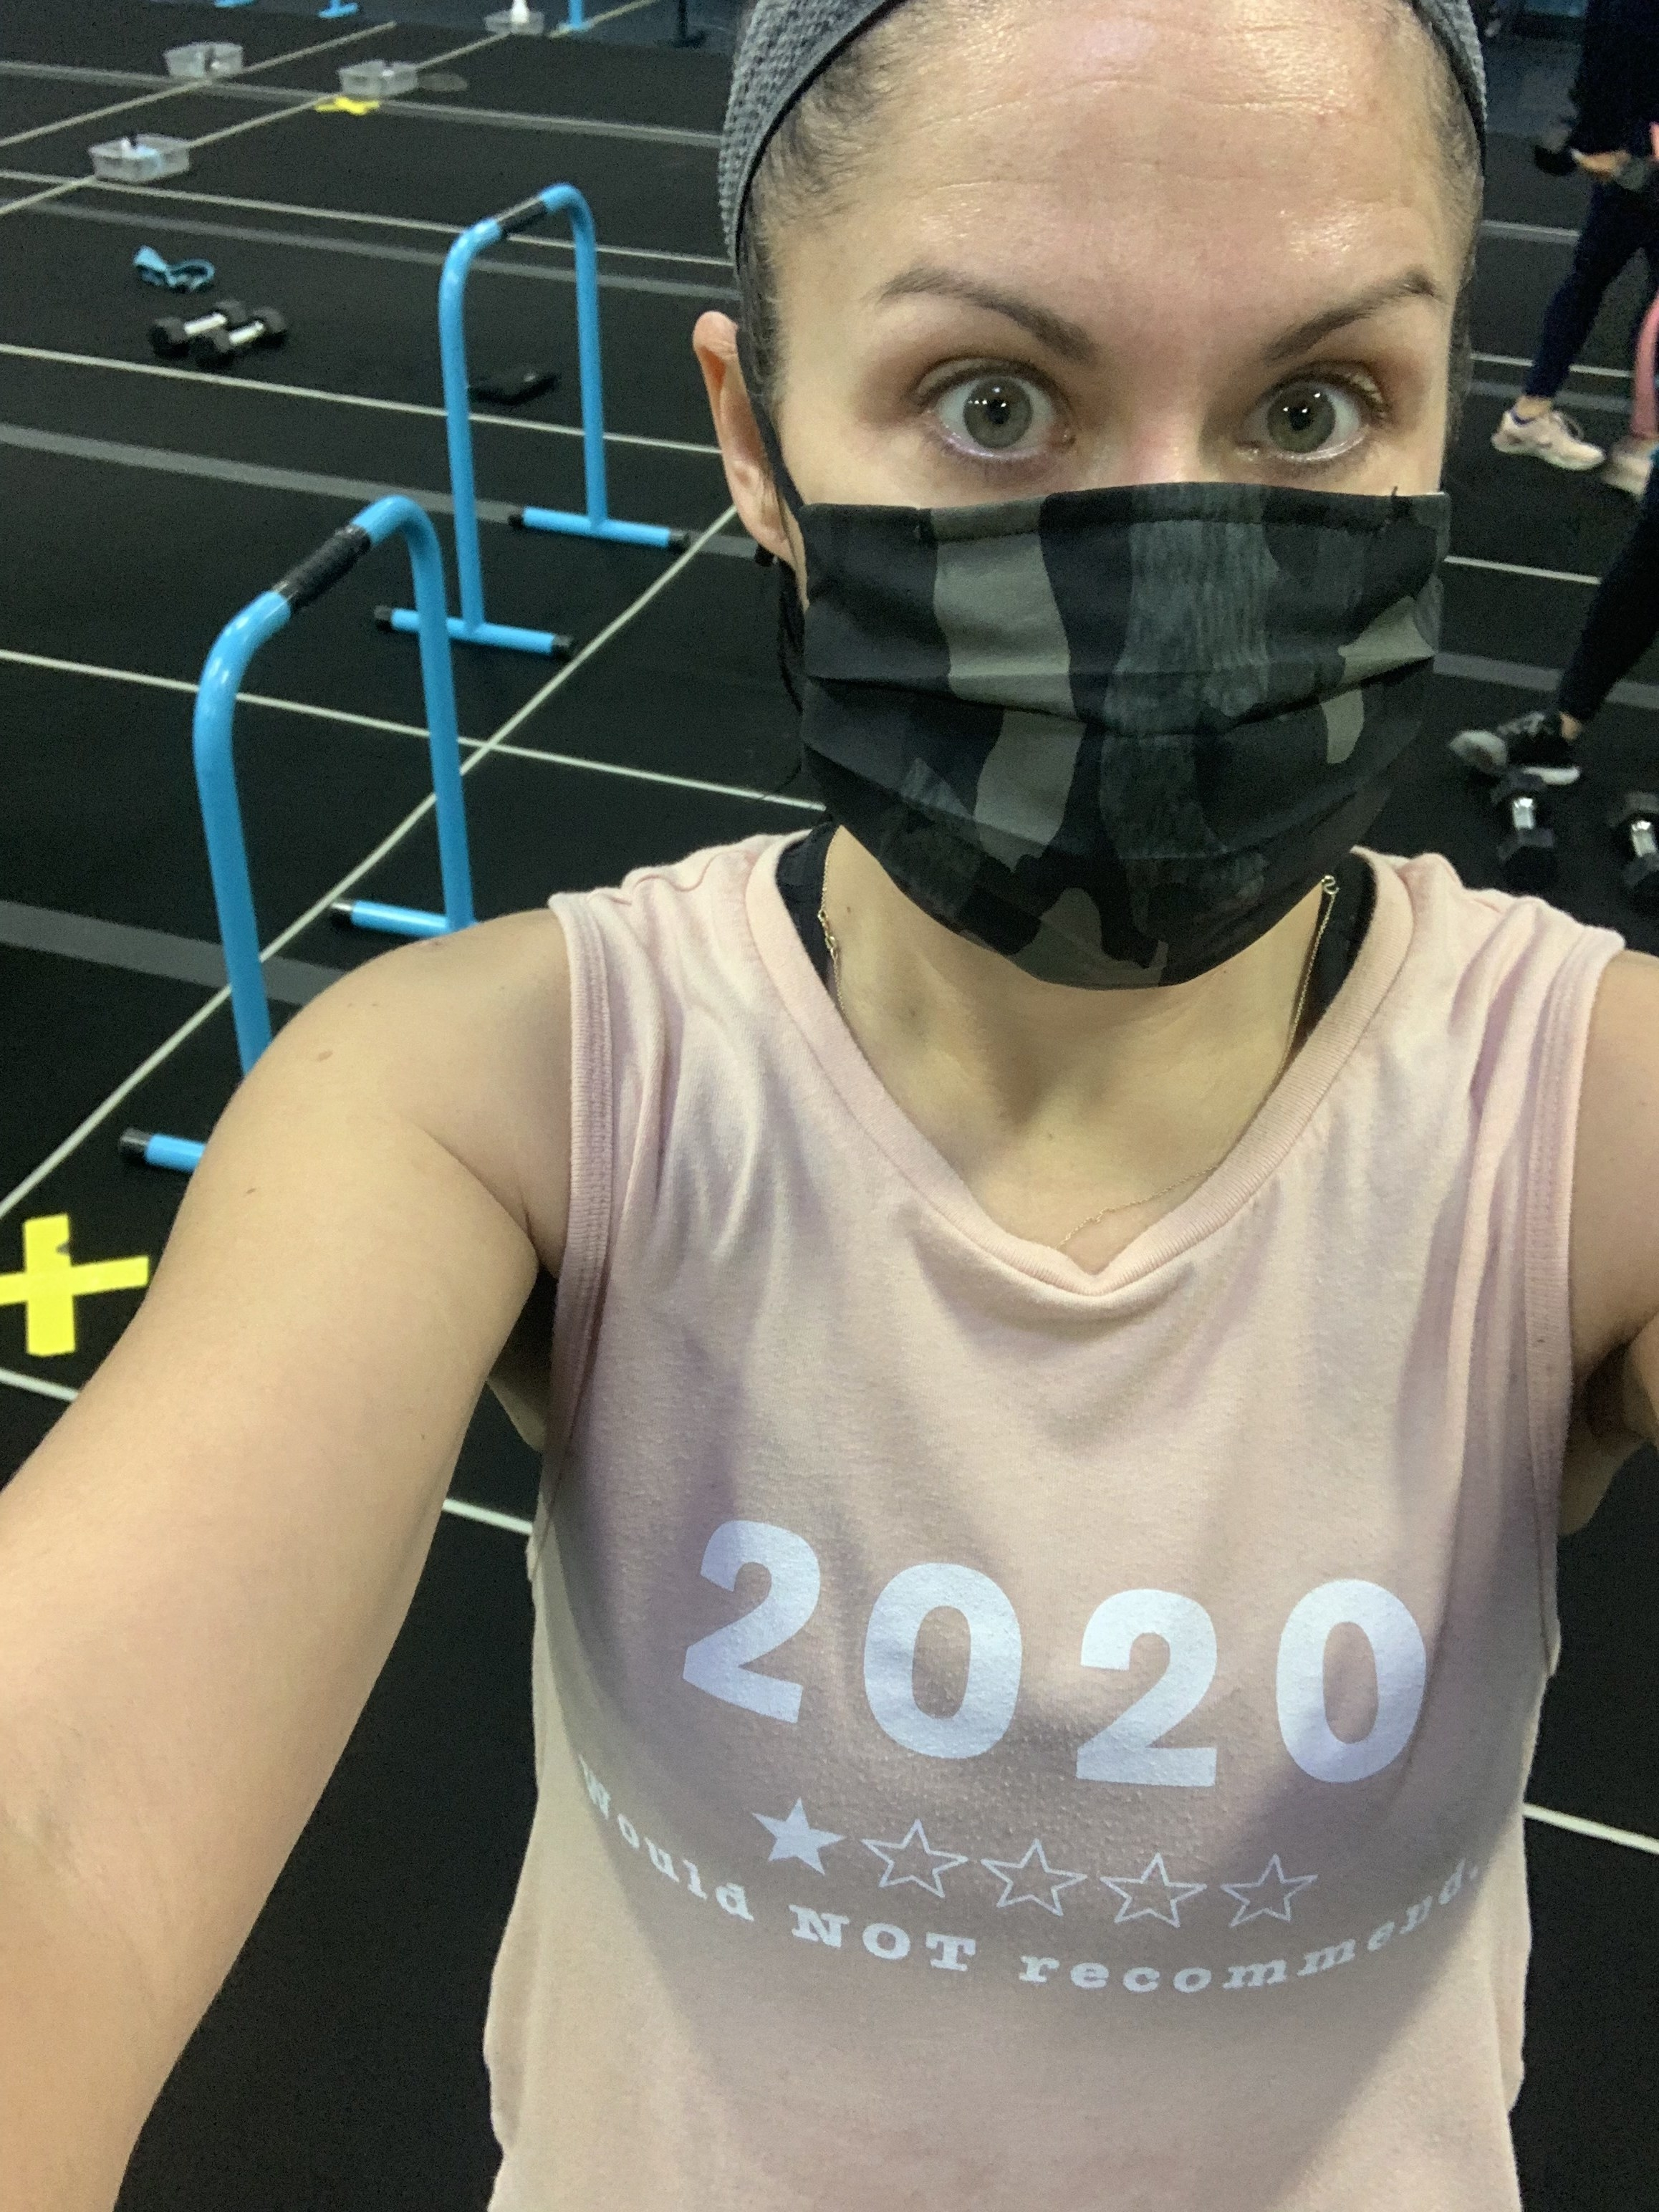 The author in a mask at her local gym